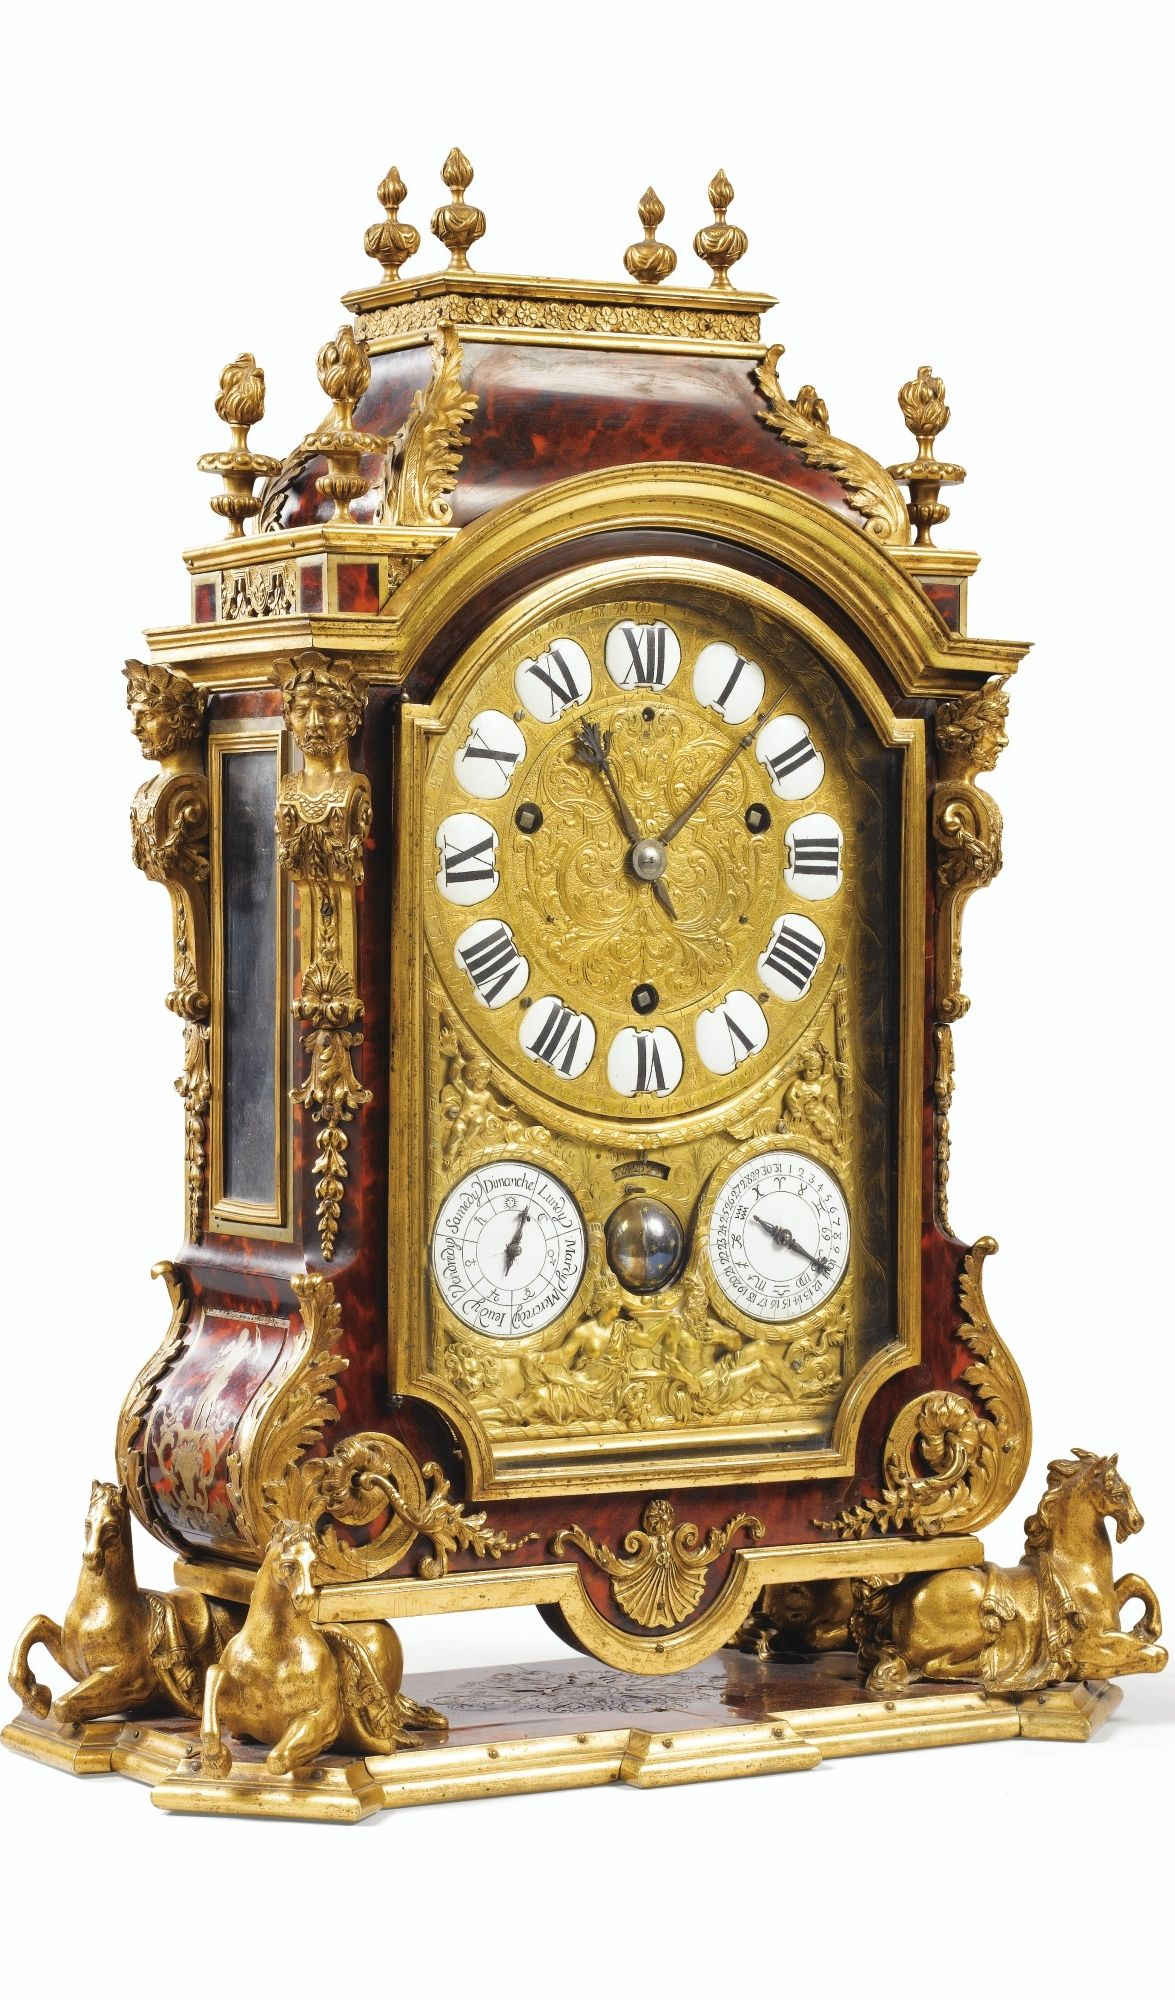 Pin By Aurora 2020 On C L O C K S Antique Clocks Antique Wall